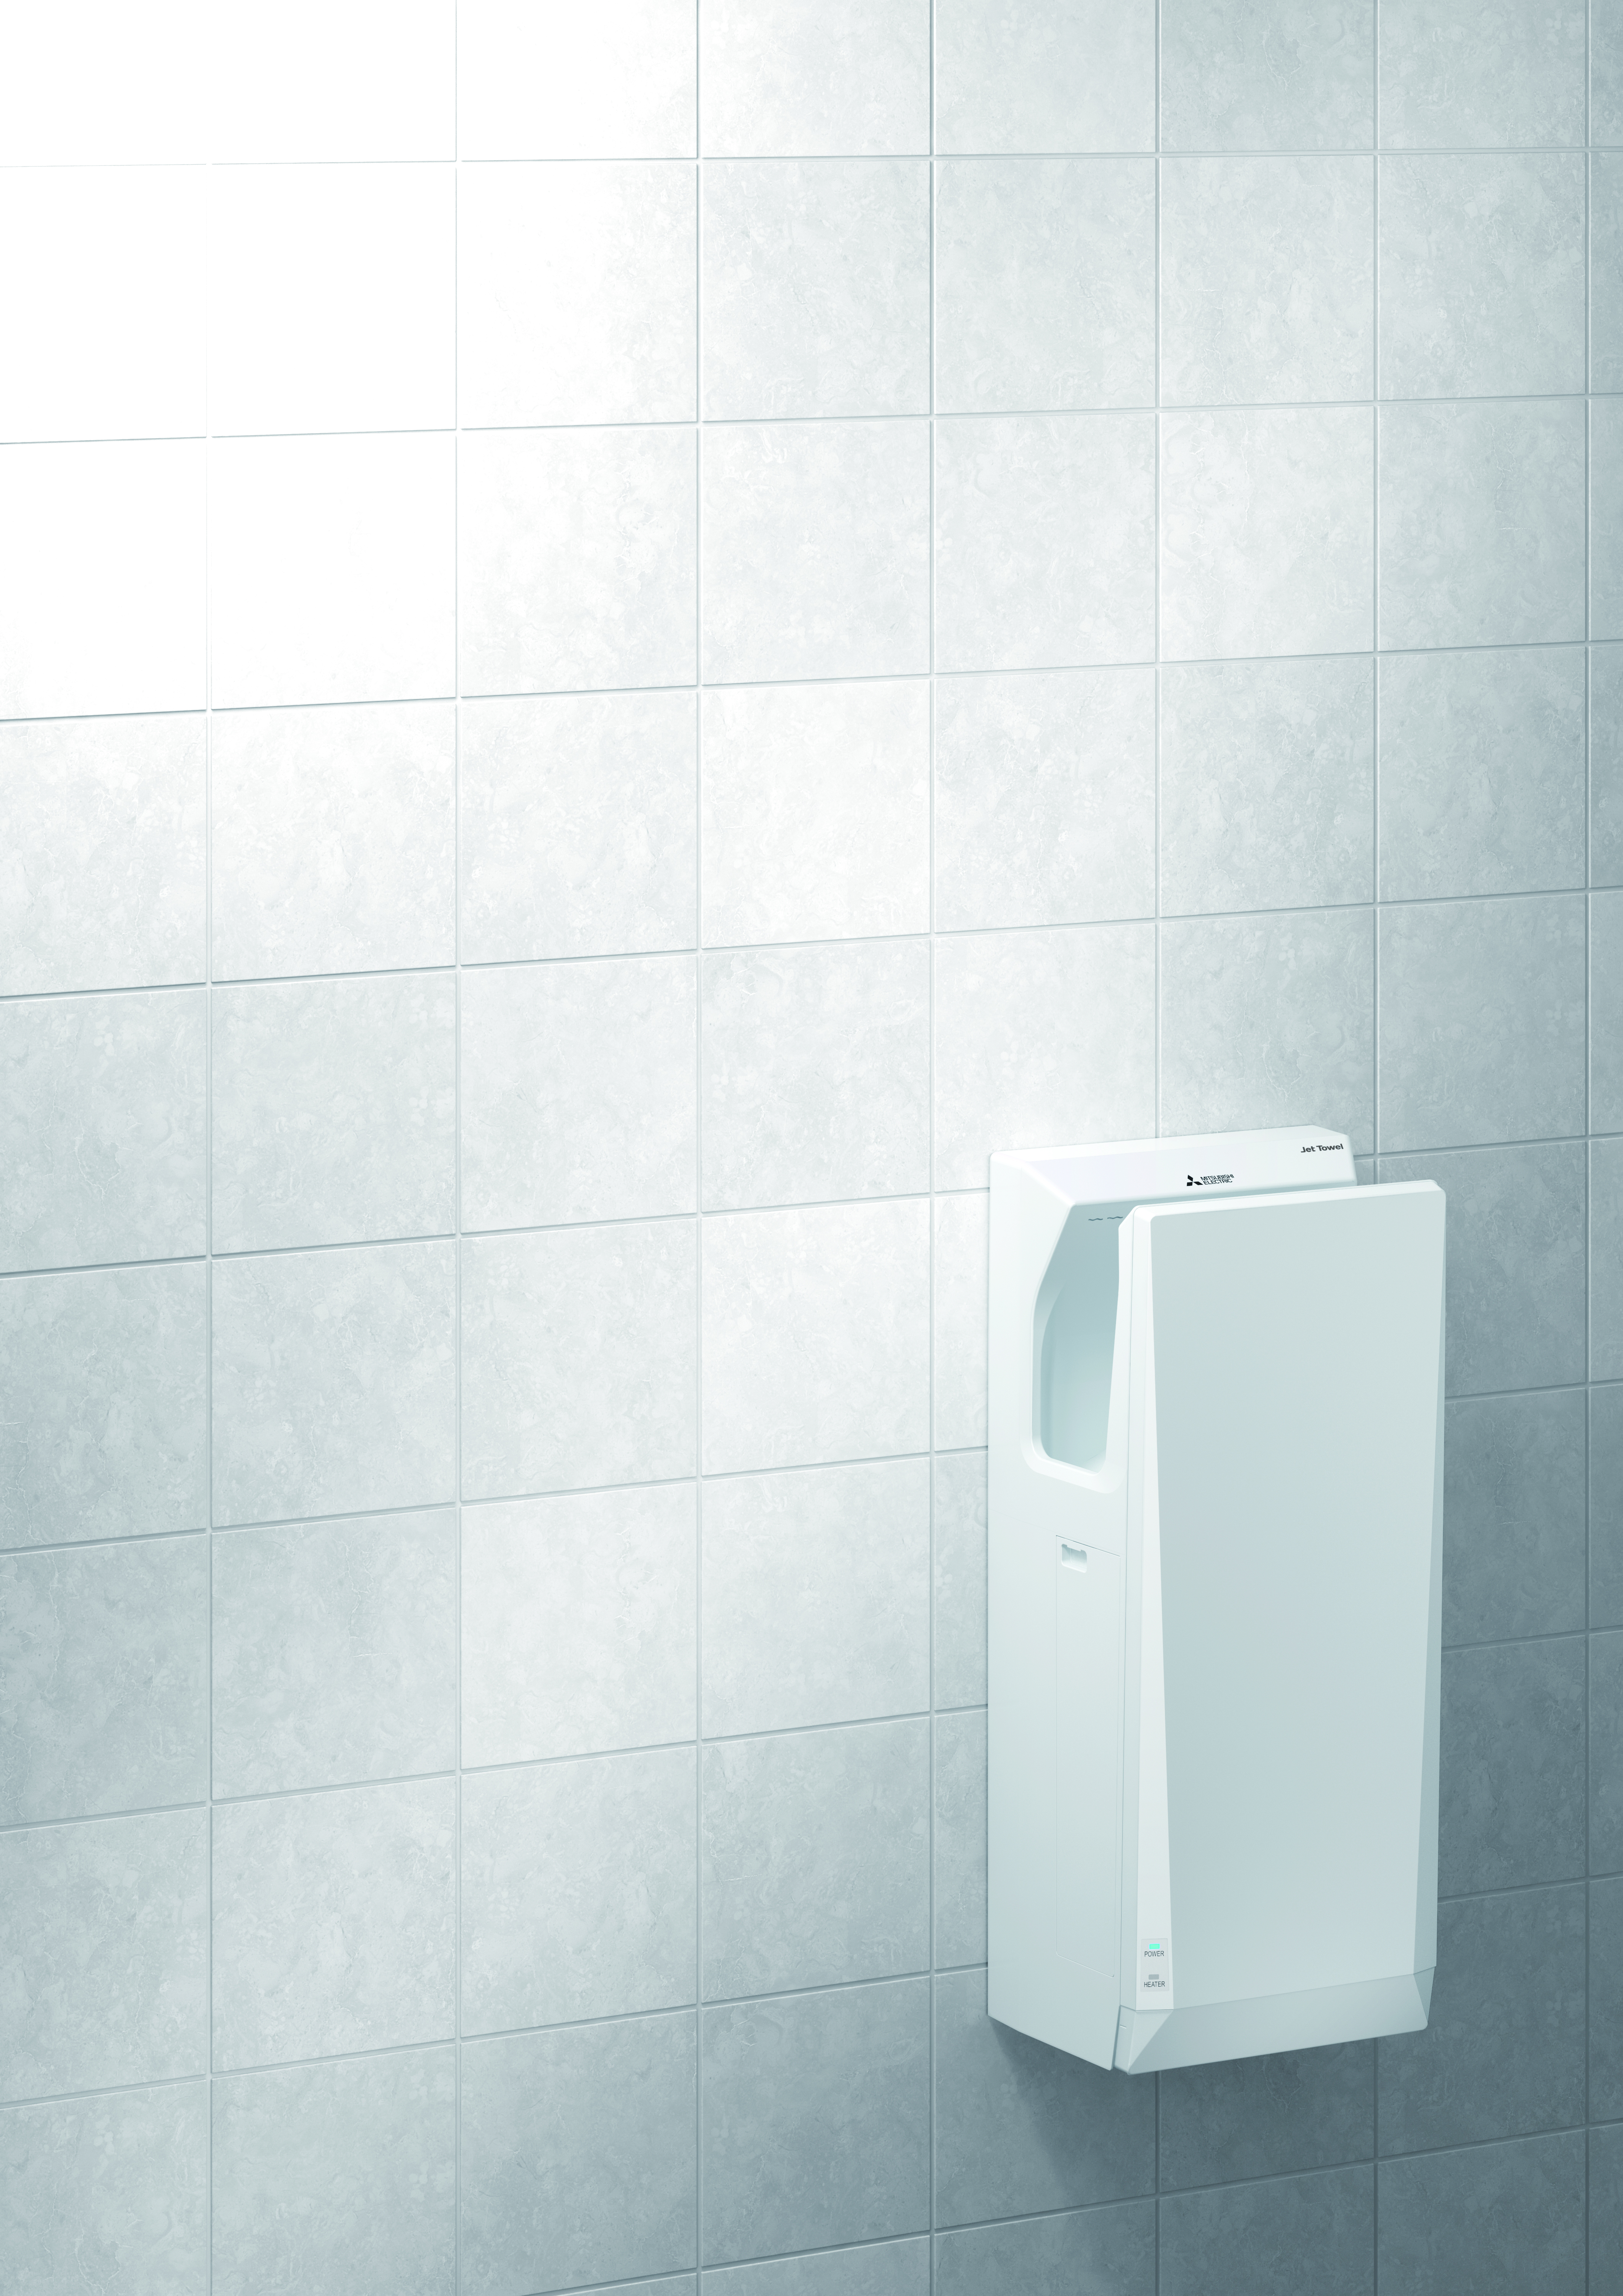 Original and best air jet hand dryer maintains technology leadership position